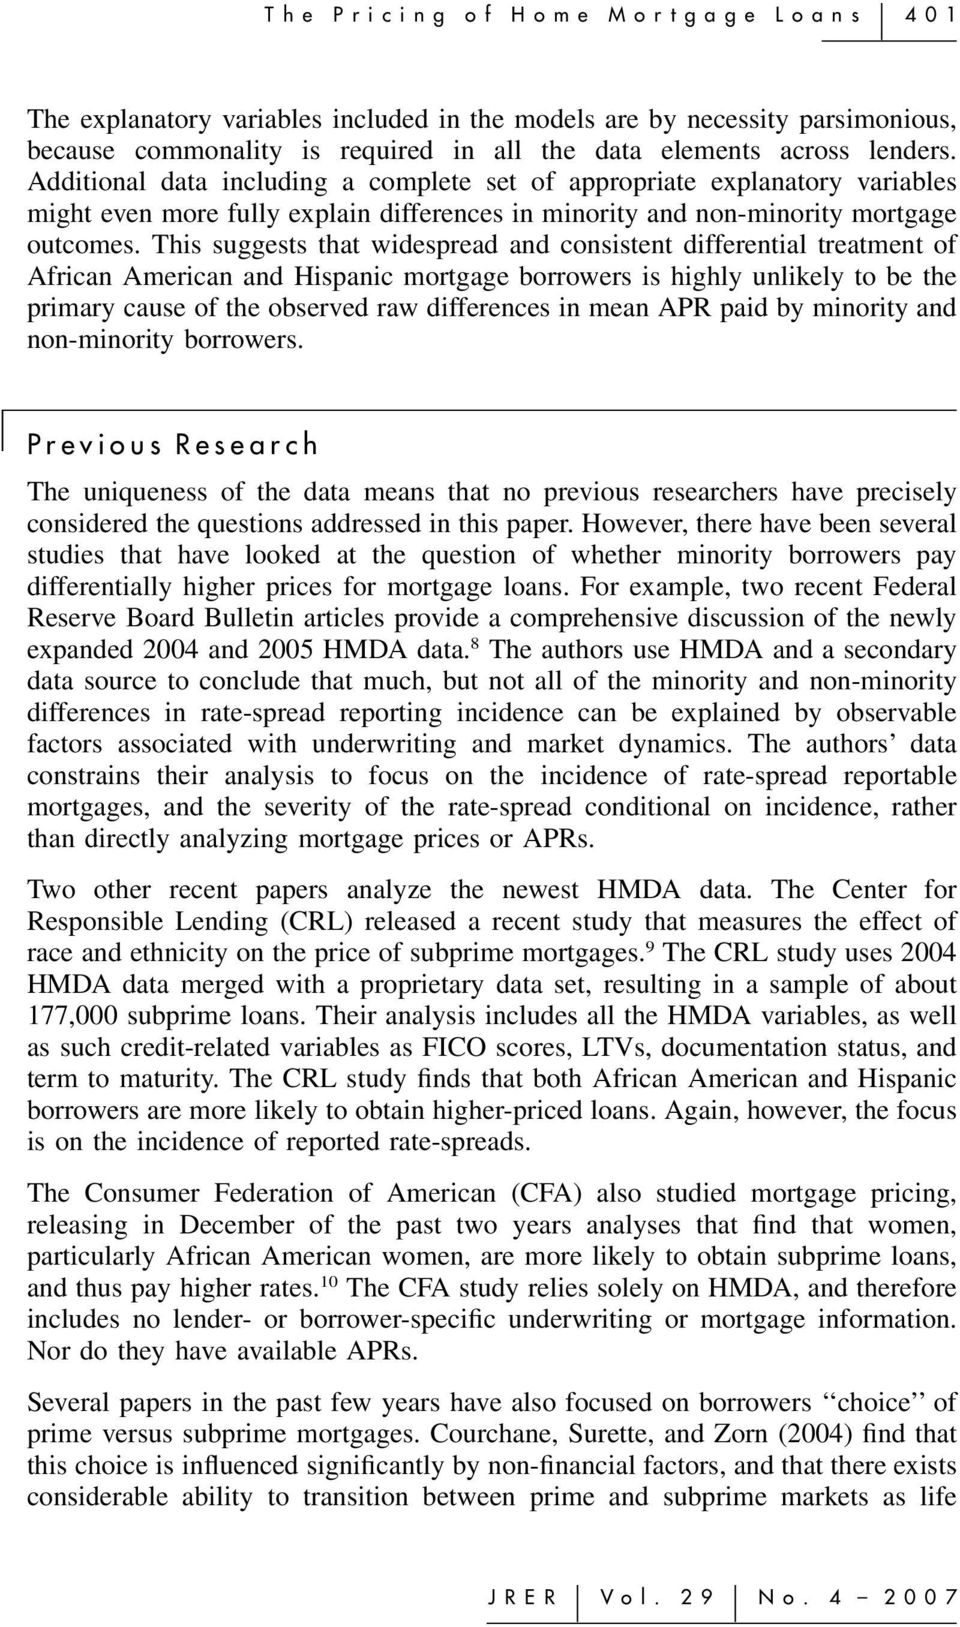 This suggests that widespread and consistent differential treatment of African American and Hispanic mortgage borrowers is highly unlikely to be the primary cause of the observed raw differences in